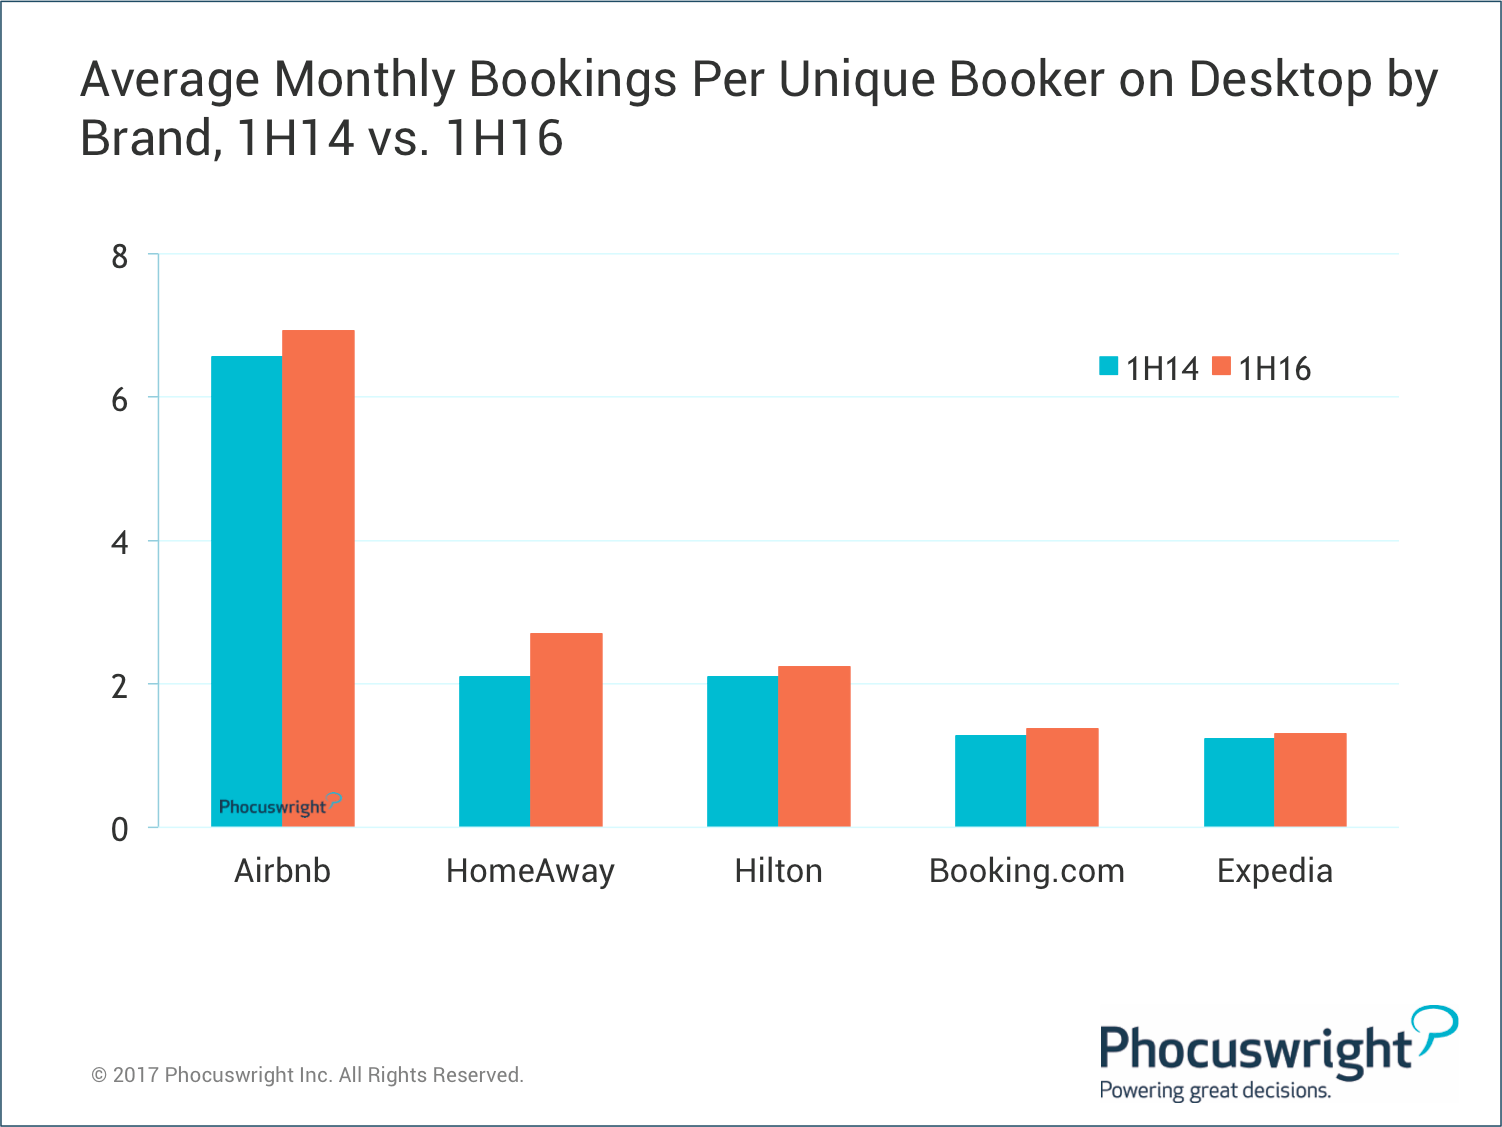 Phocuswright-AvgMonthlyBookings-UniqueBooker-ByBrand-1H14v1H16.png